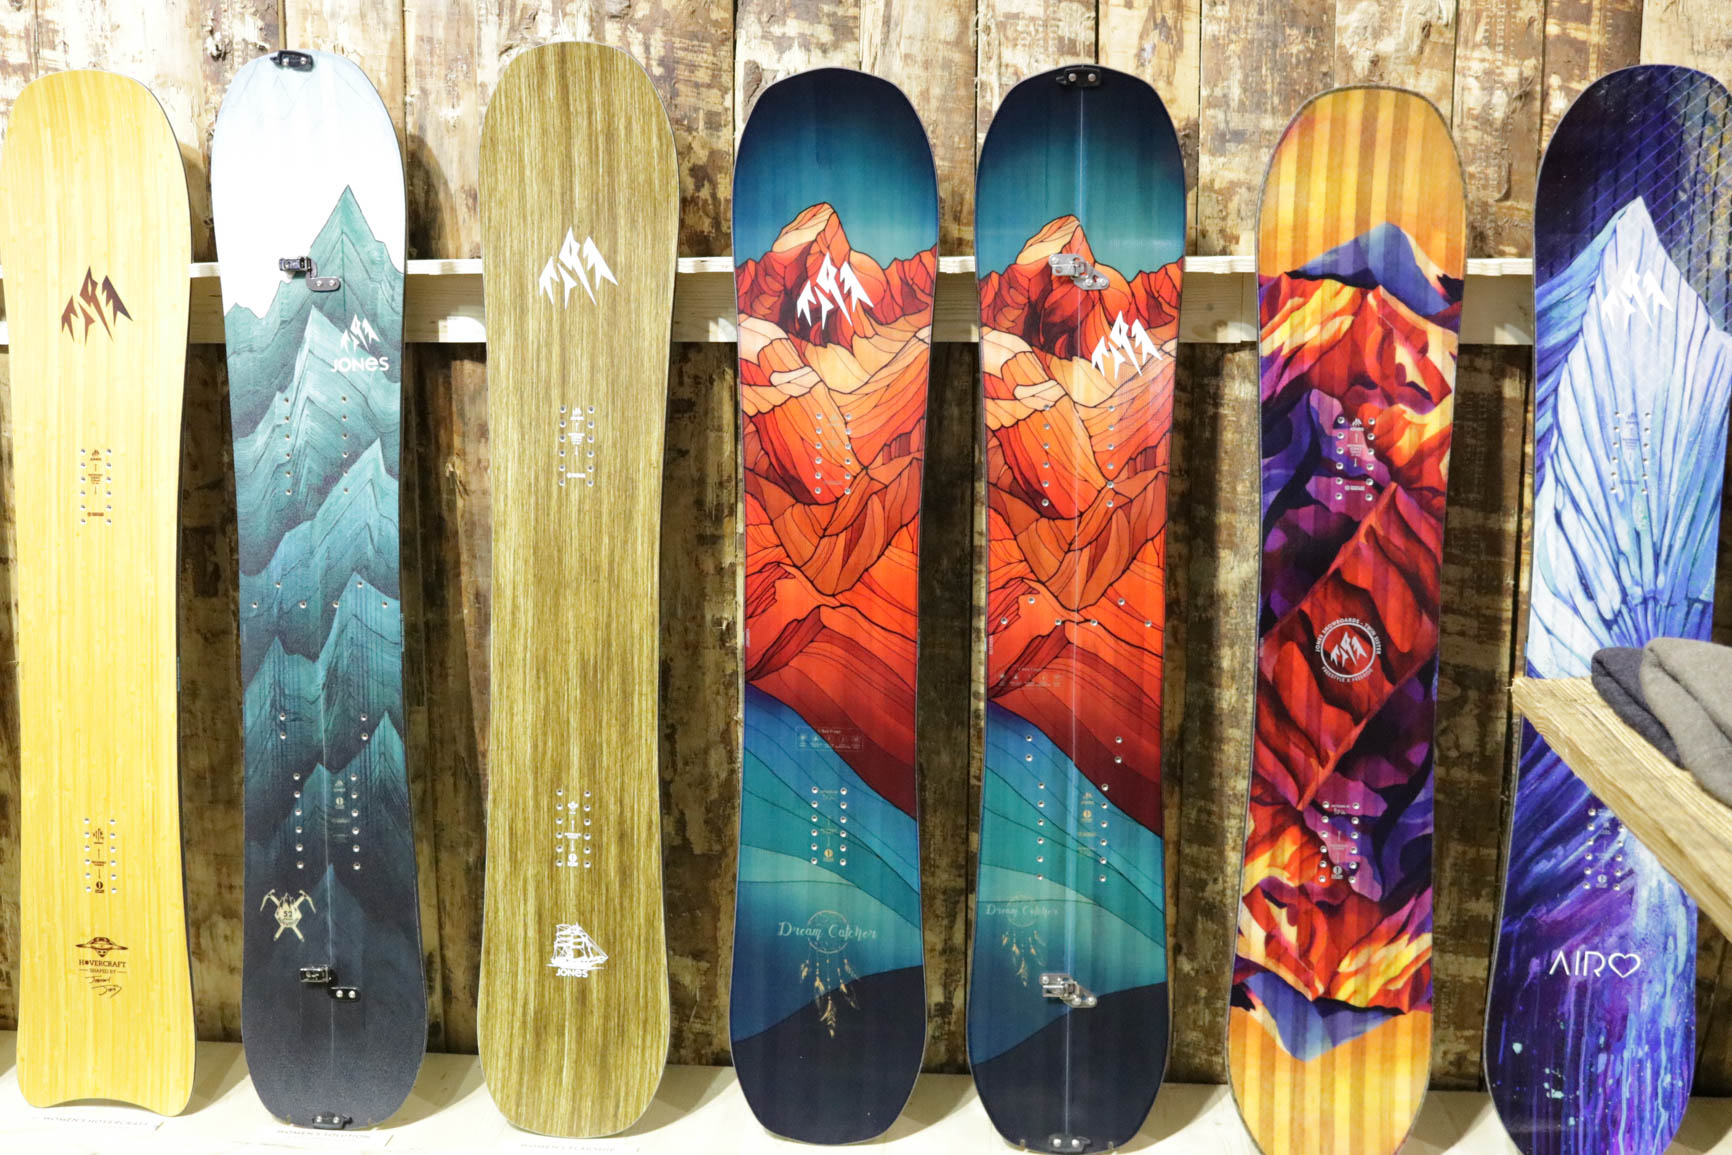 Jones Snowboards 18/19 (von links nach rechts): Hovercraft, Women's Solution, Flagship, Dream Catcher, Dream Catcher Split, Twin Sister, Airheart